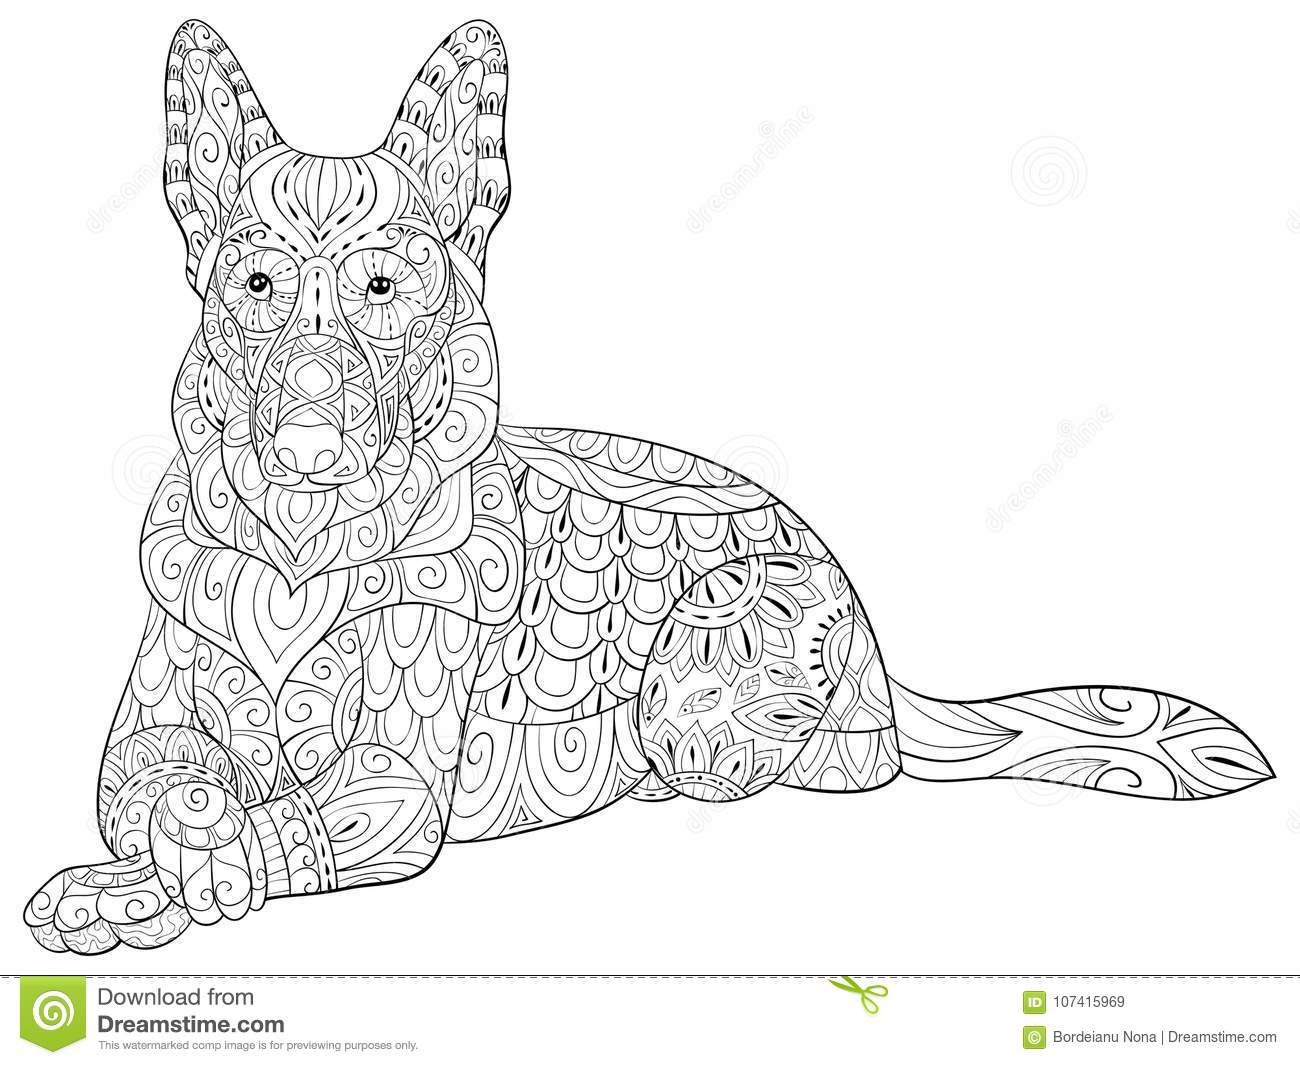 Adult Coloring Page A Cute Isolated Dogal For RelaxingZen Art Style Illustration